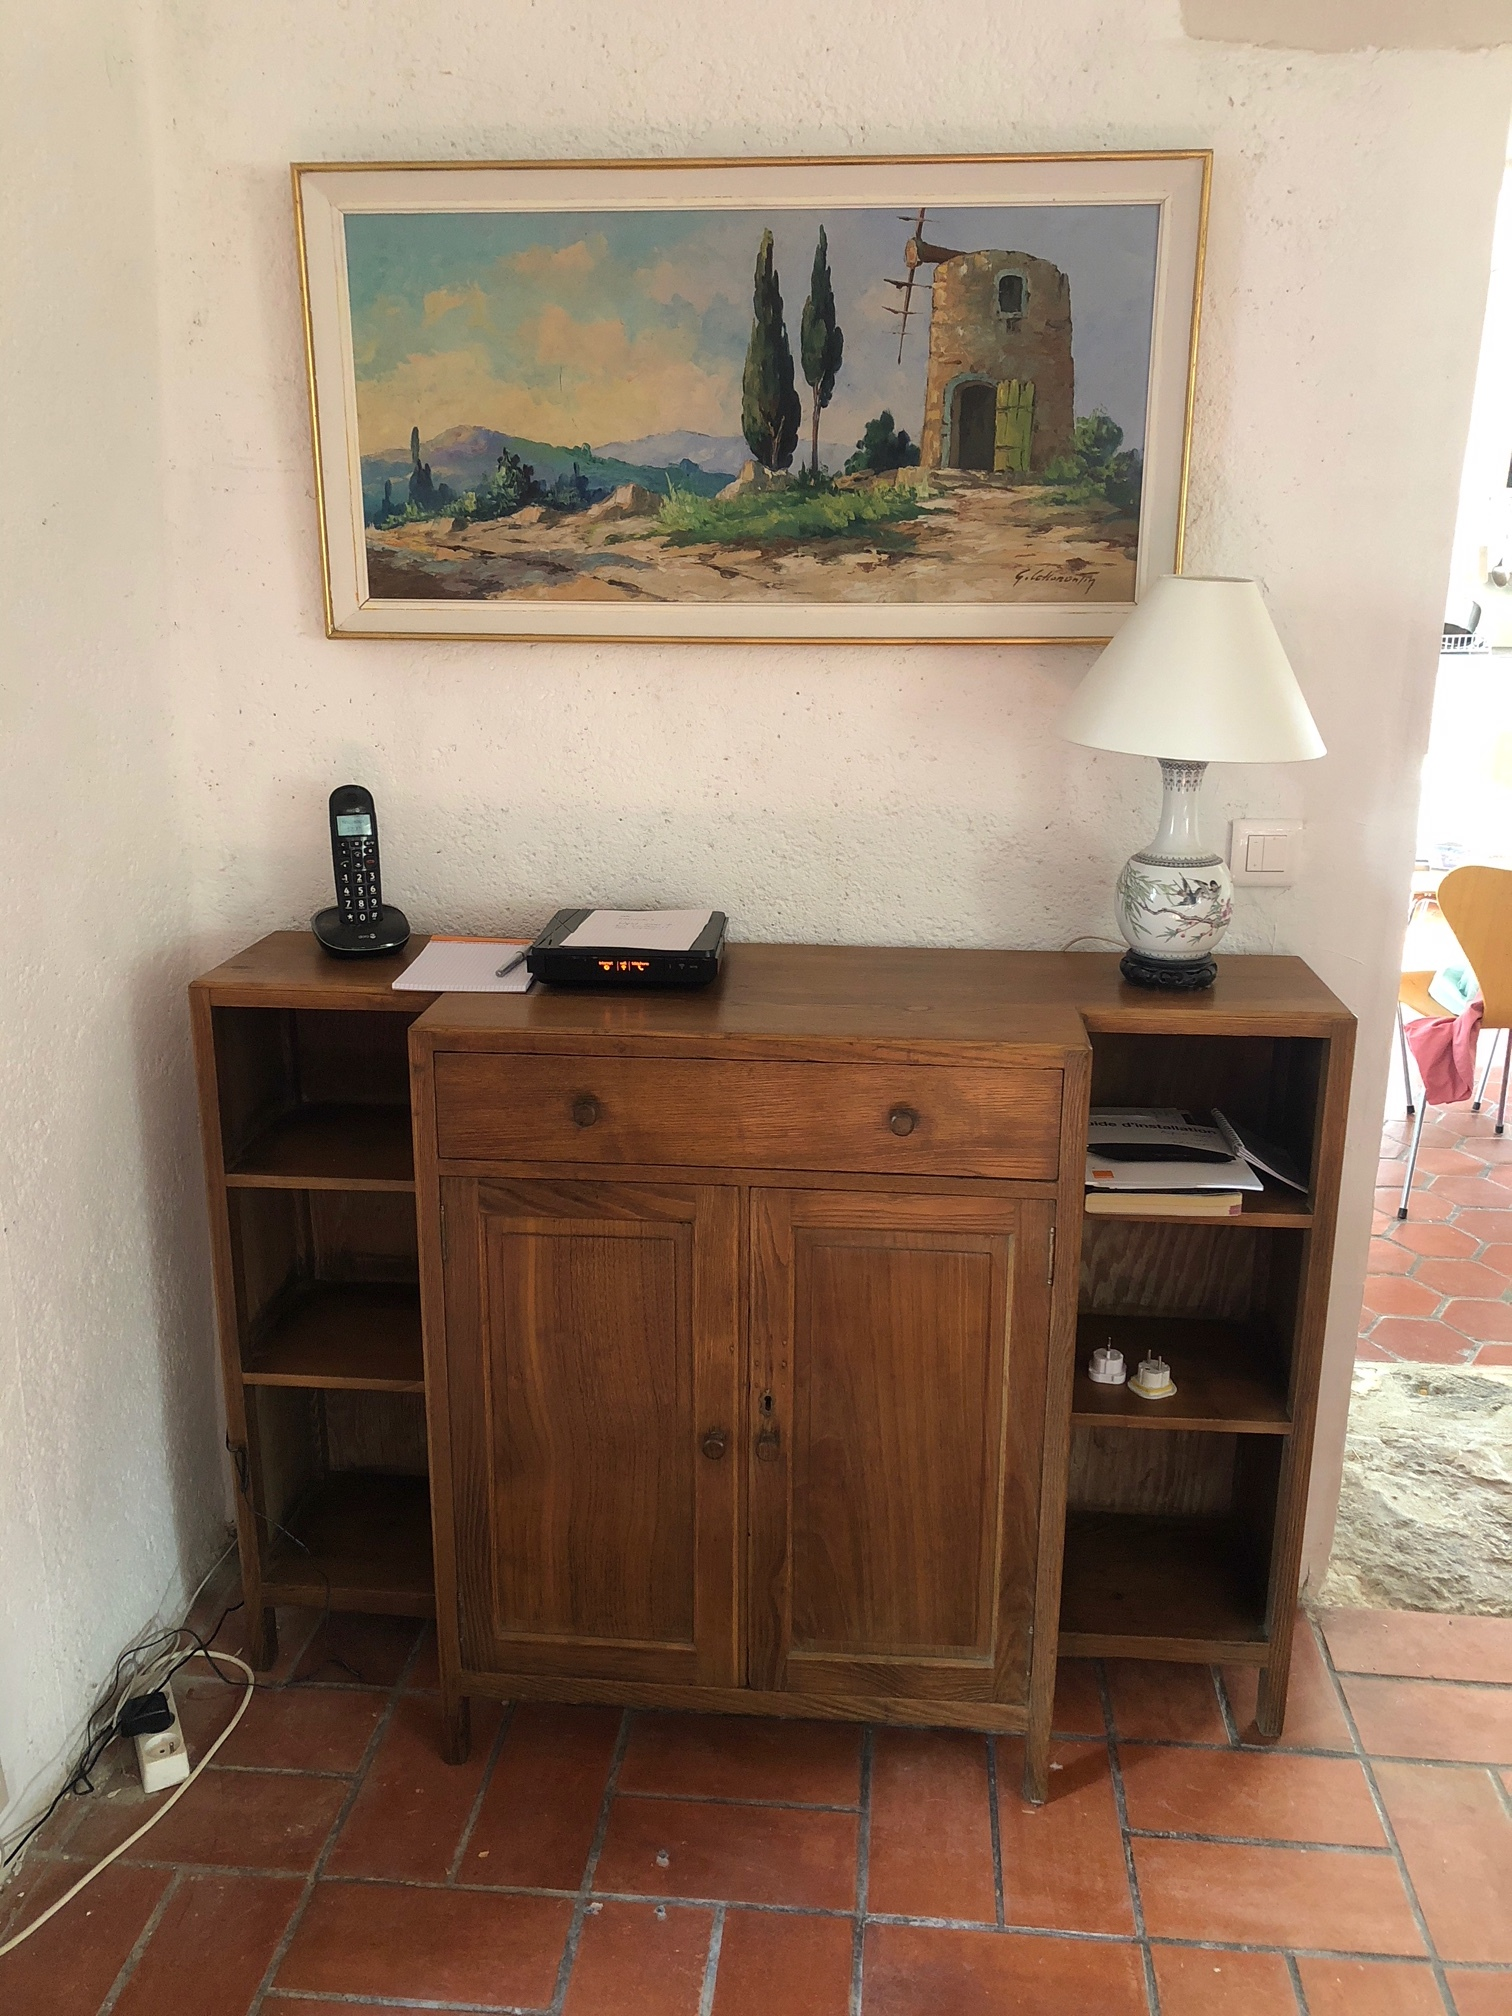 - Thank you for the restoration of the Heals Oak Bookcase. It is now in the house in France, and fits perfectly. Helen, London